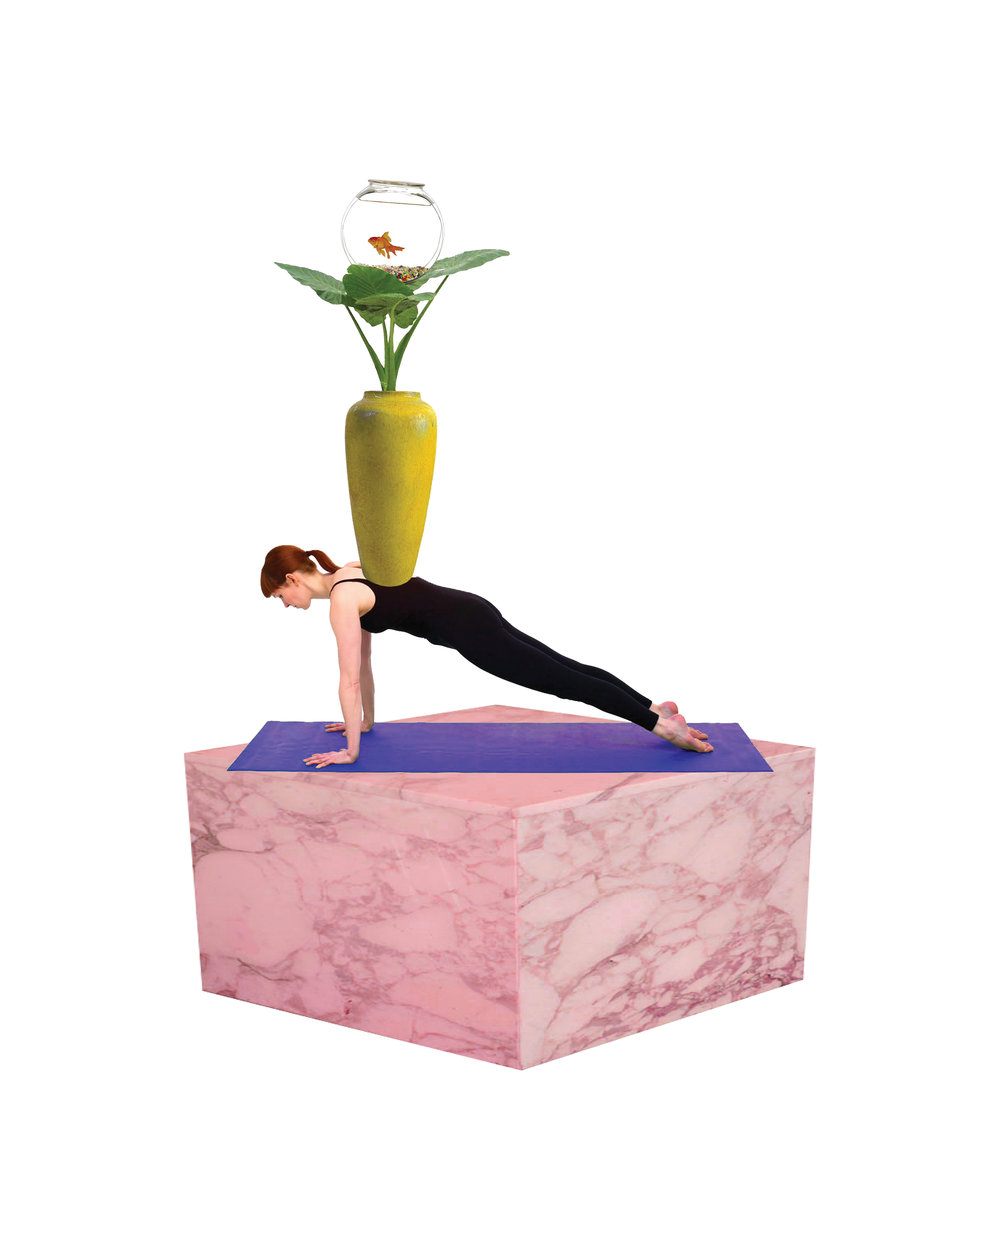 Yoga Totem 1, Digital collage, 2015